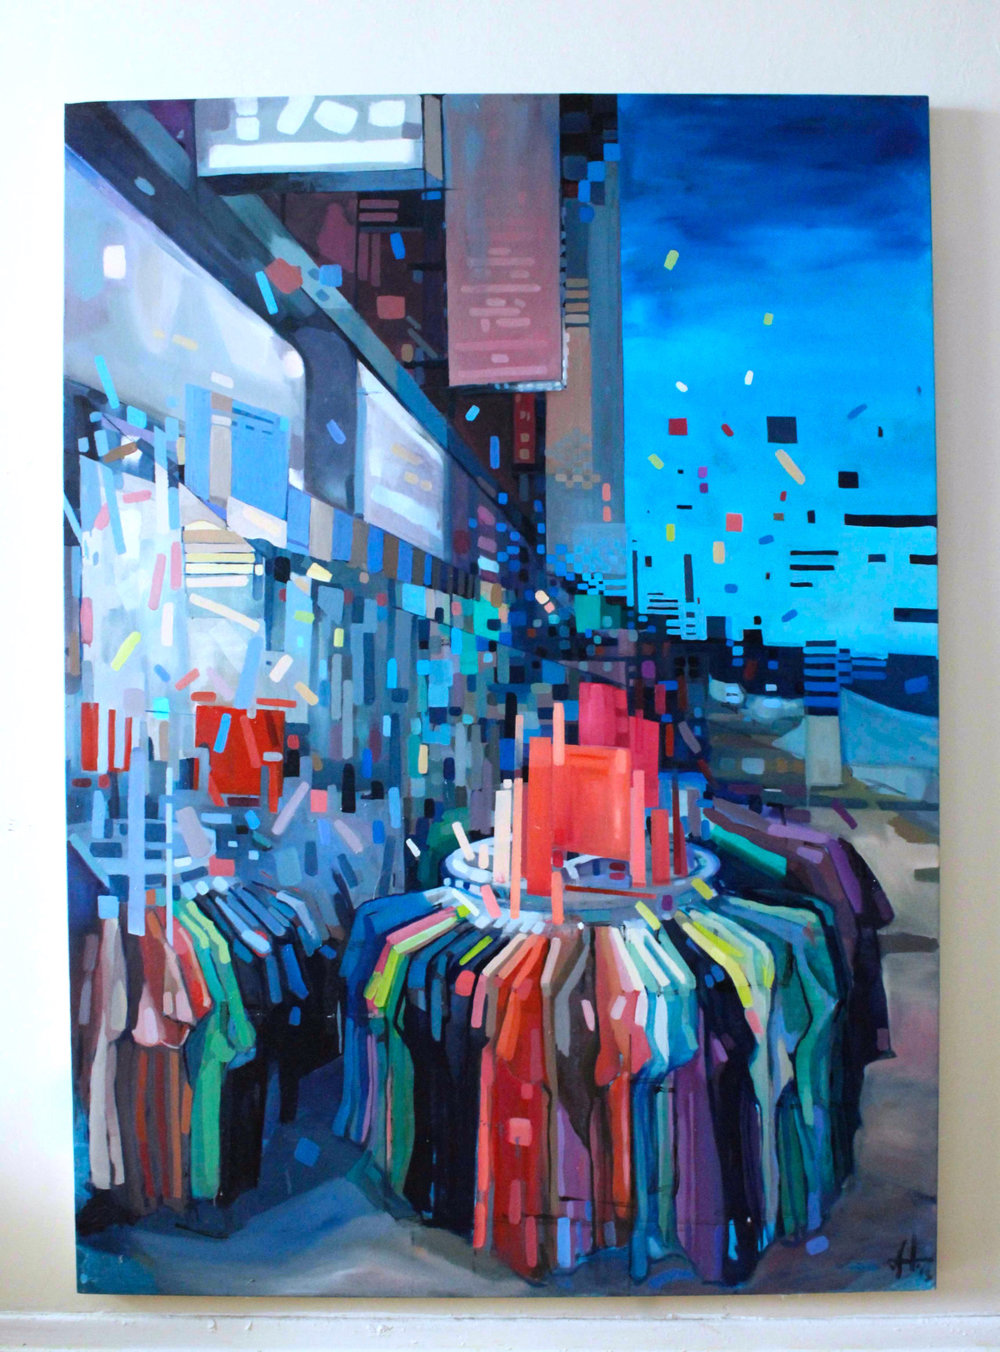 Summer in Kensington Market, 2014. Oil on canvas. 6'x4'